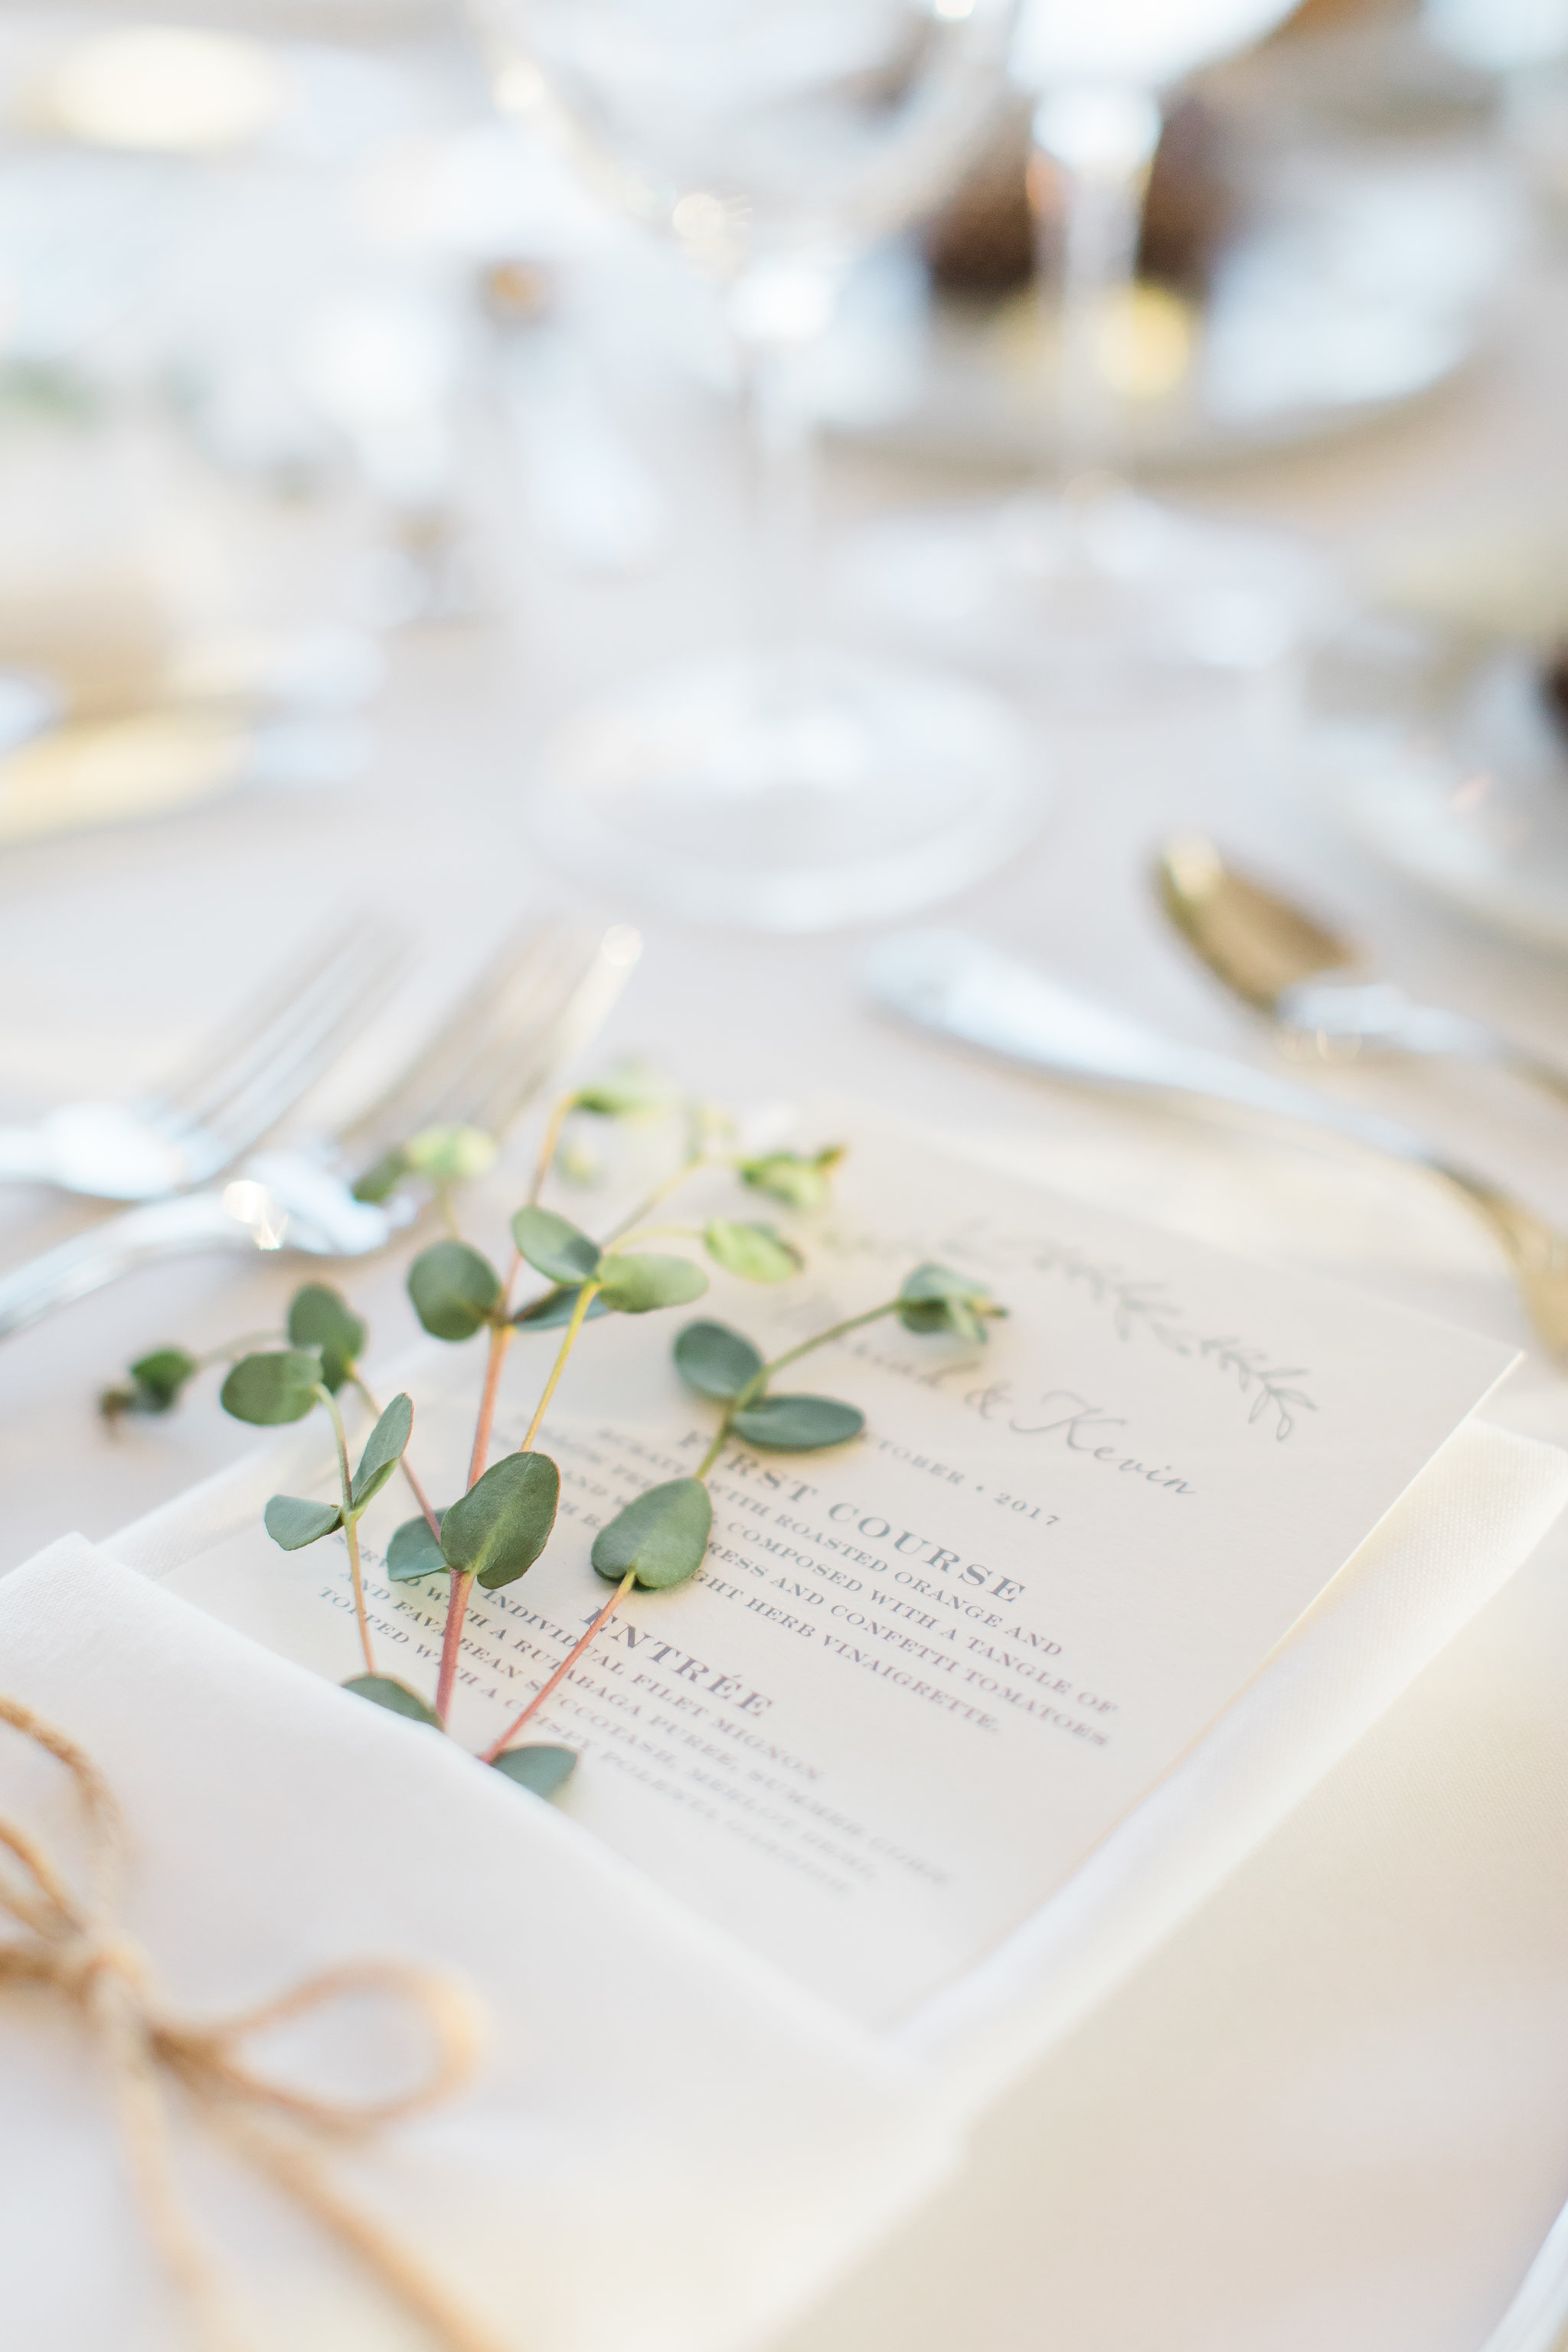 Rustic wedding menu with greenery details and twine